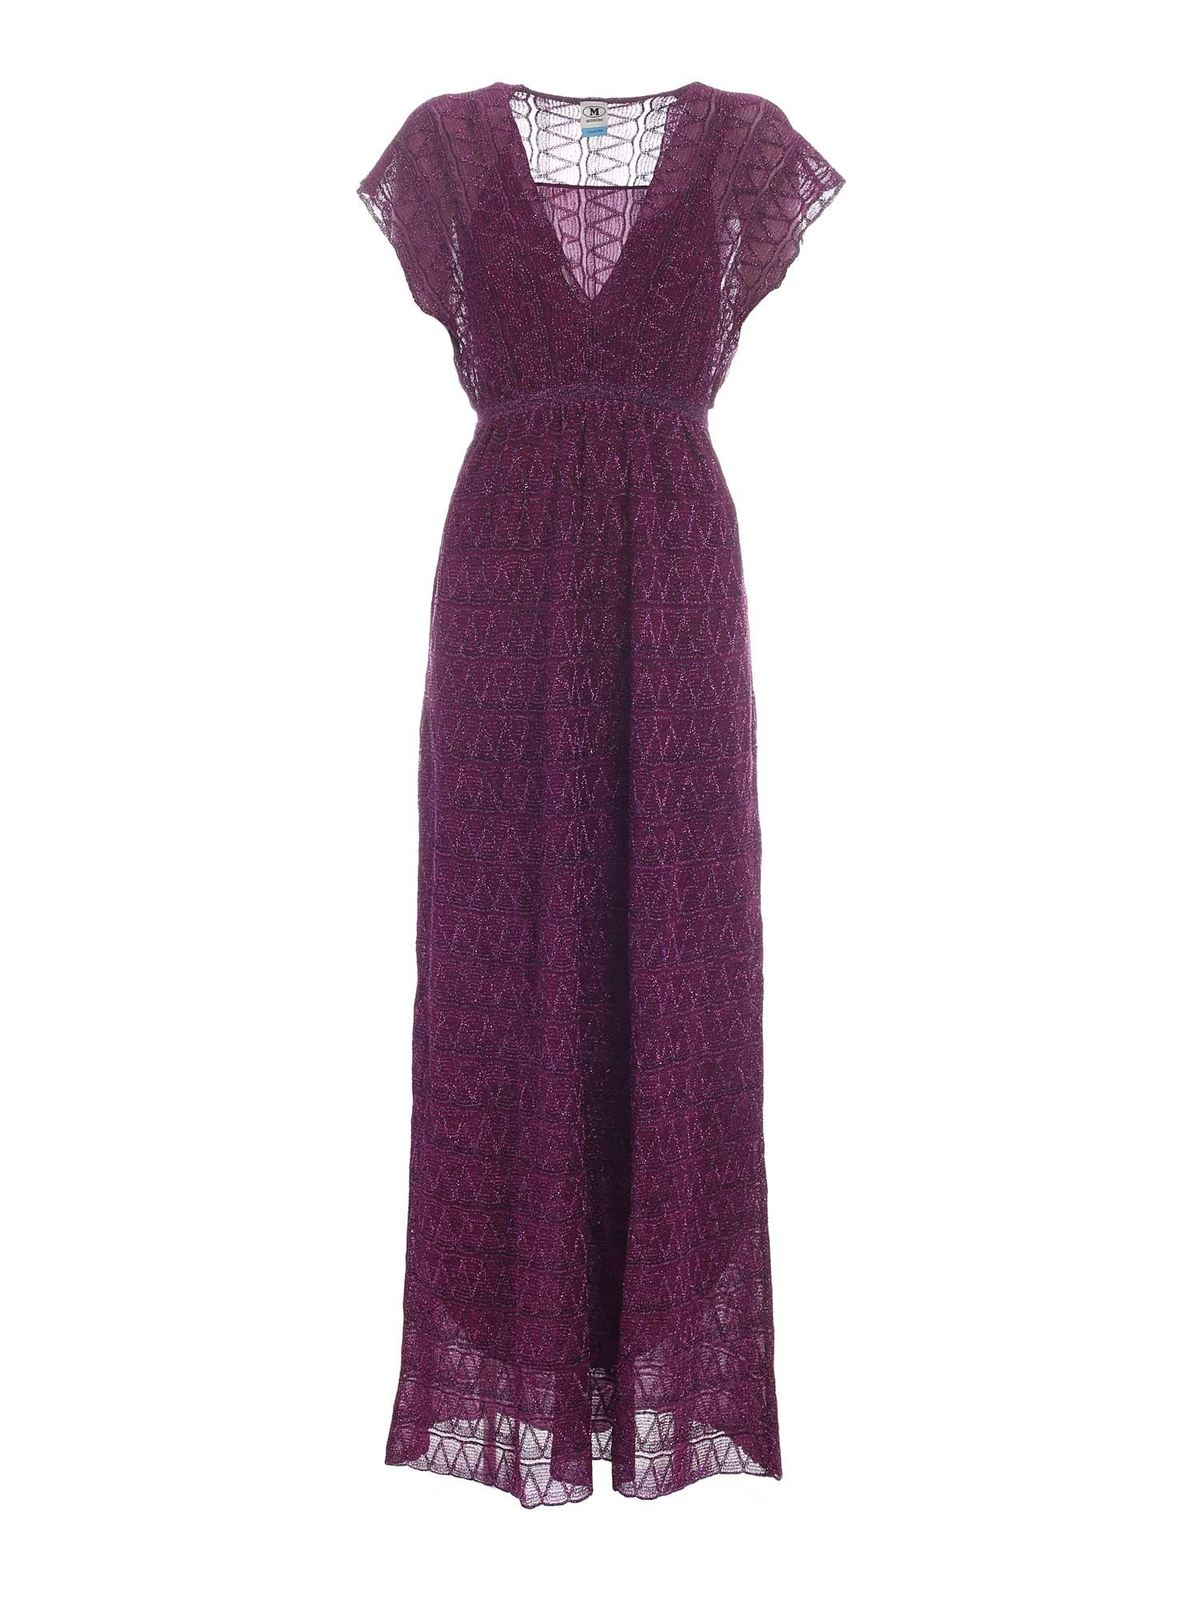 Missoni LONG LAME DRESS IN FUCHSIA